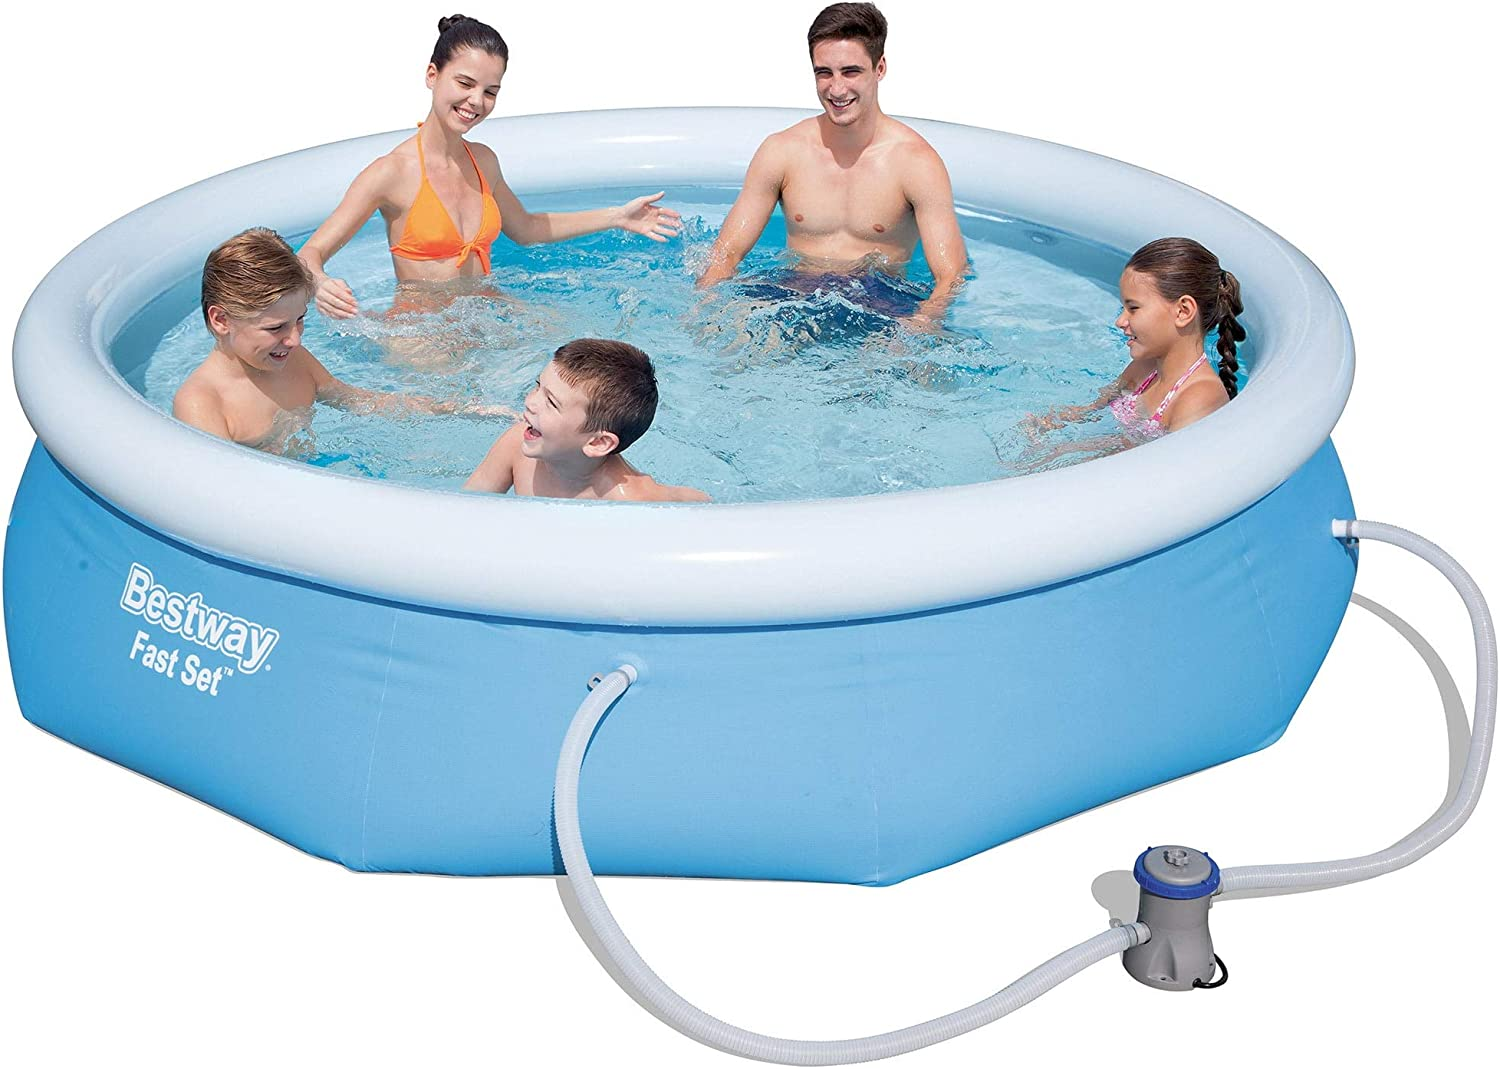 Jordanoshop Bestway Fast Set 57270 - Piscina Hinchable ...